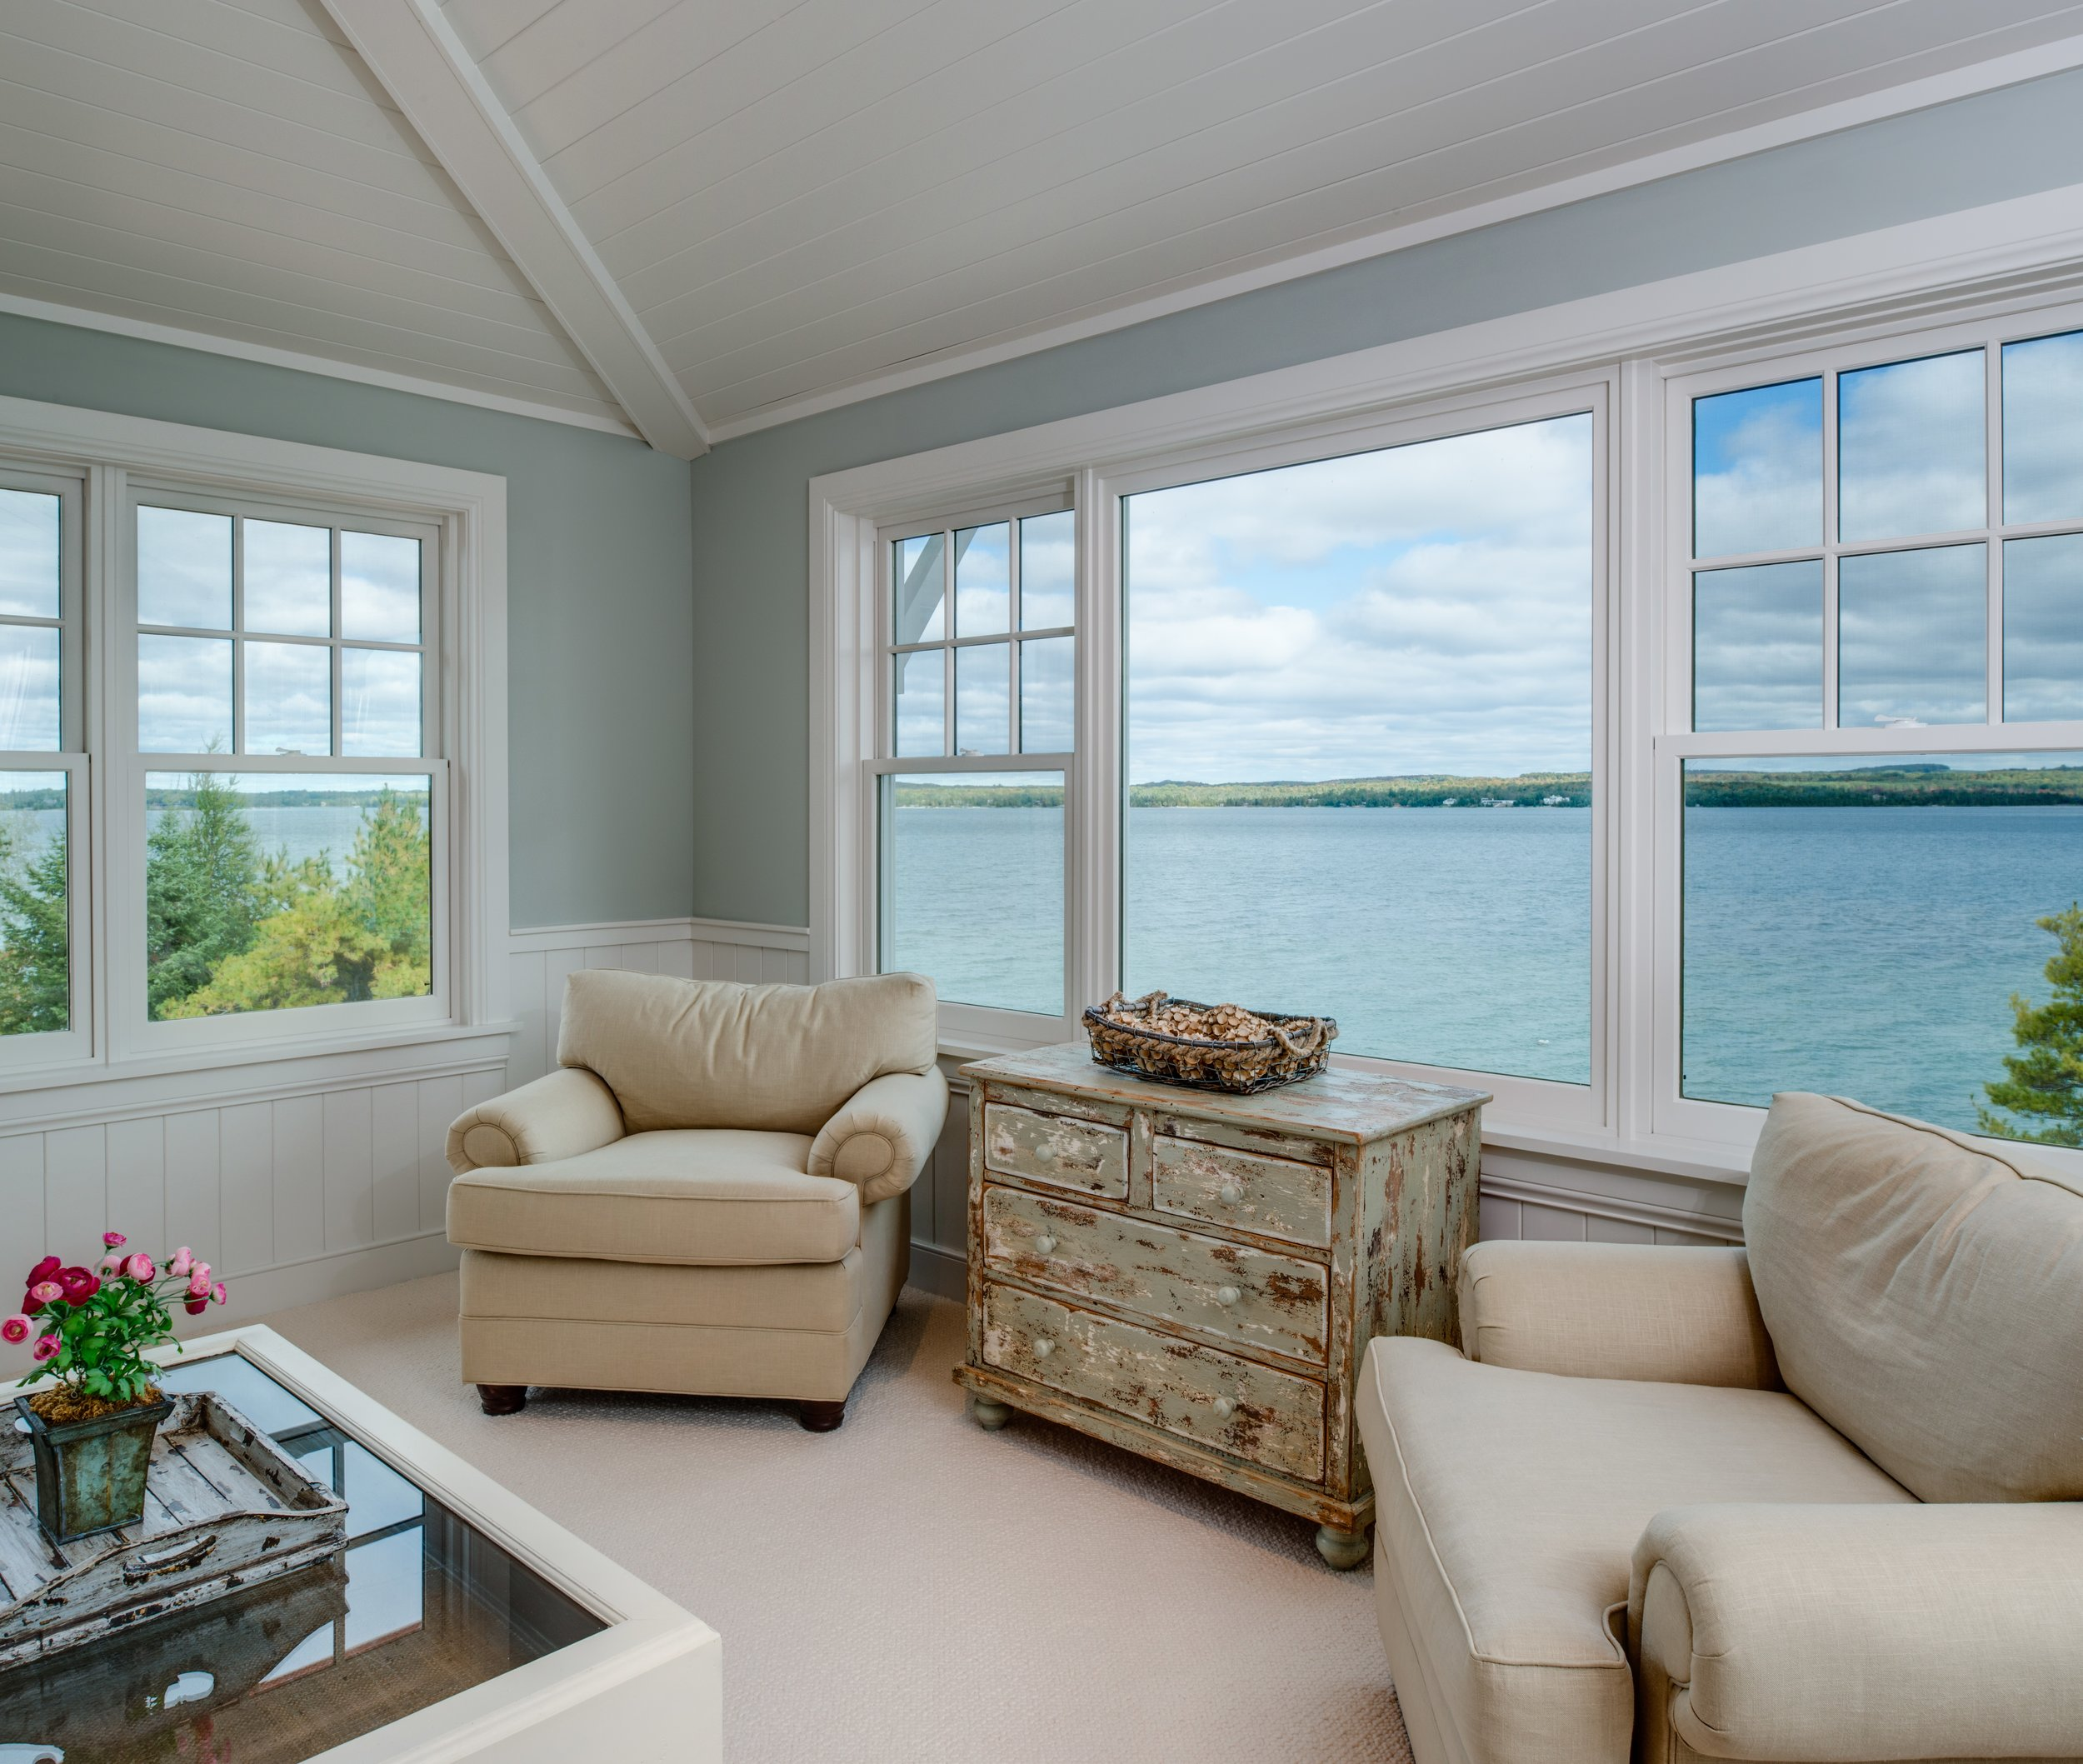 Begin the beachfront real estate, home buying, and custom home building or remodeling process in Northern Michigan. Let the best Harbor Springs, MI builder and contractor, Birchwood Construction Company lead the process.